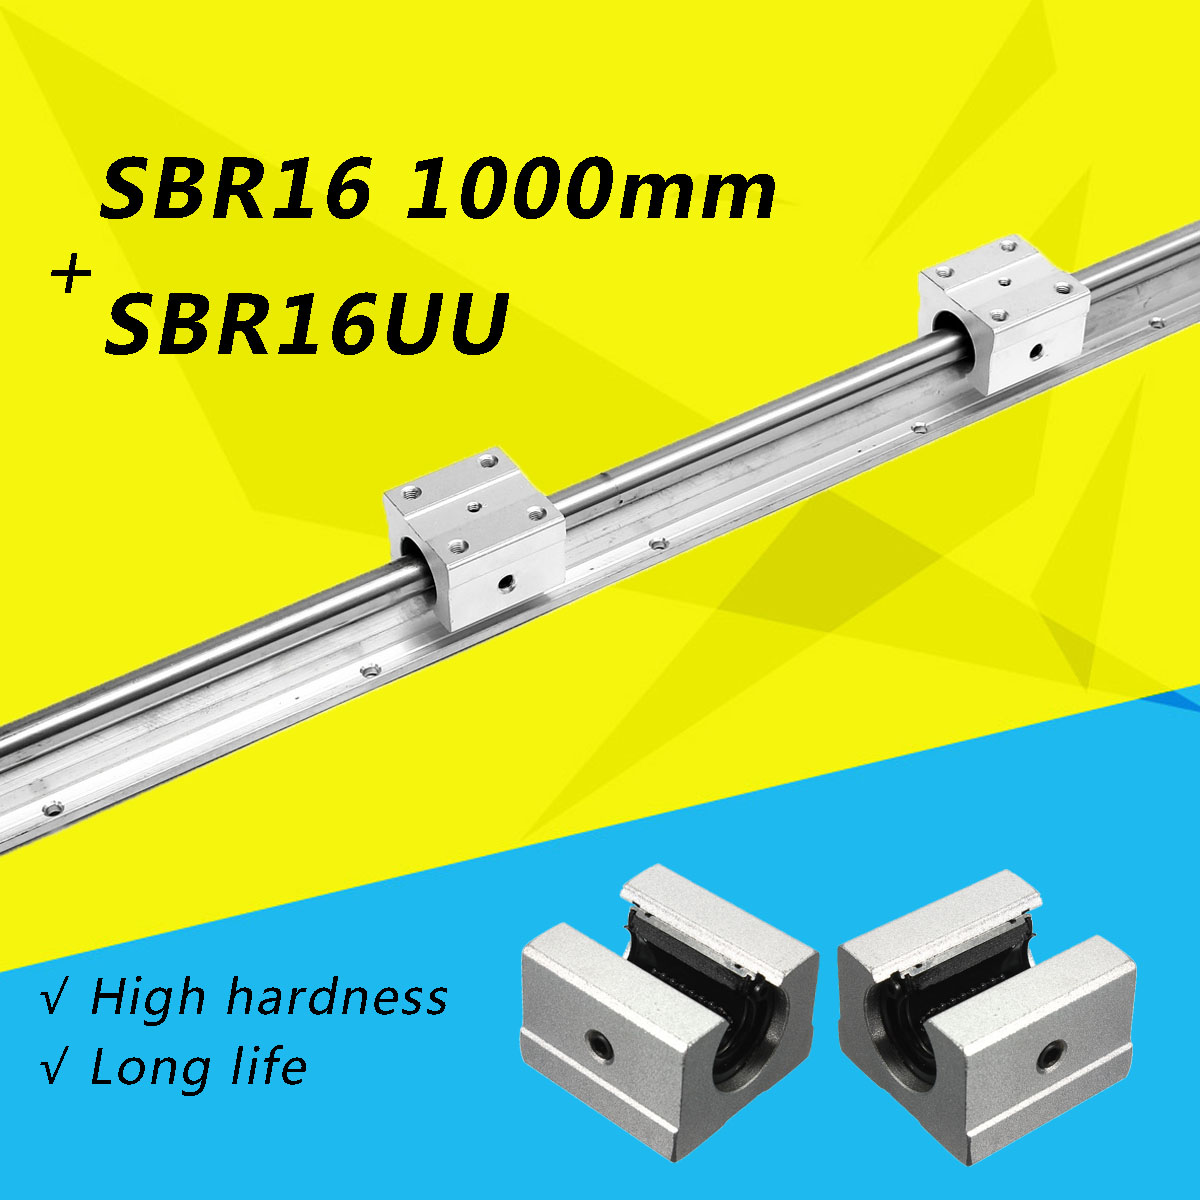 2x SBR16 1000mm Linéaire Support de Rail Axe Optique Guide + 4 SBR16UU Portant Bloc